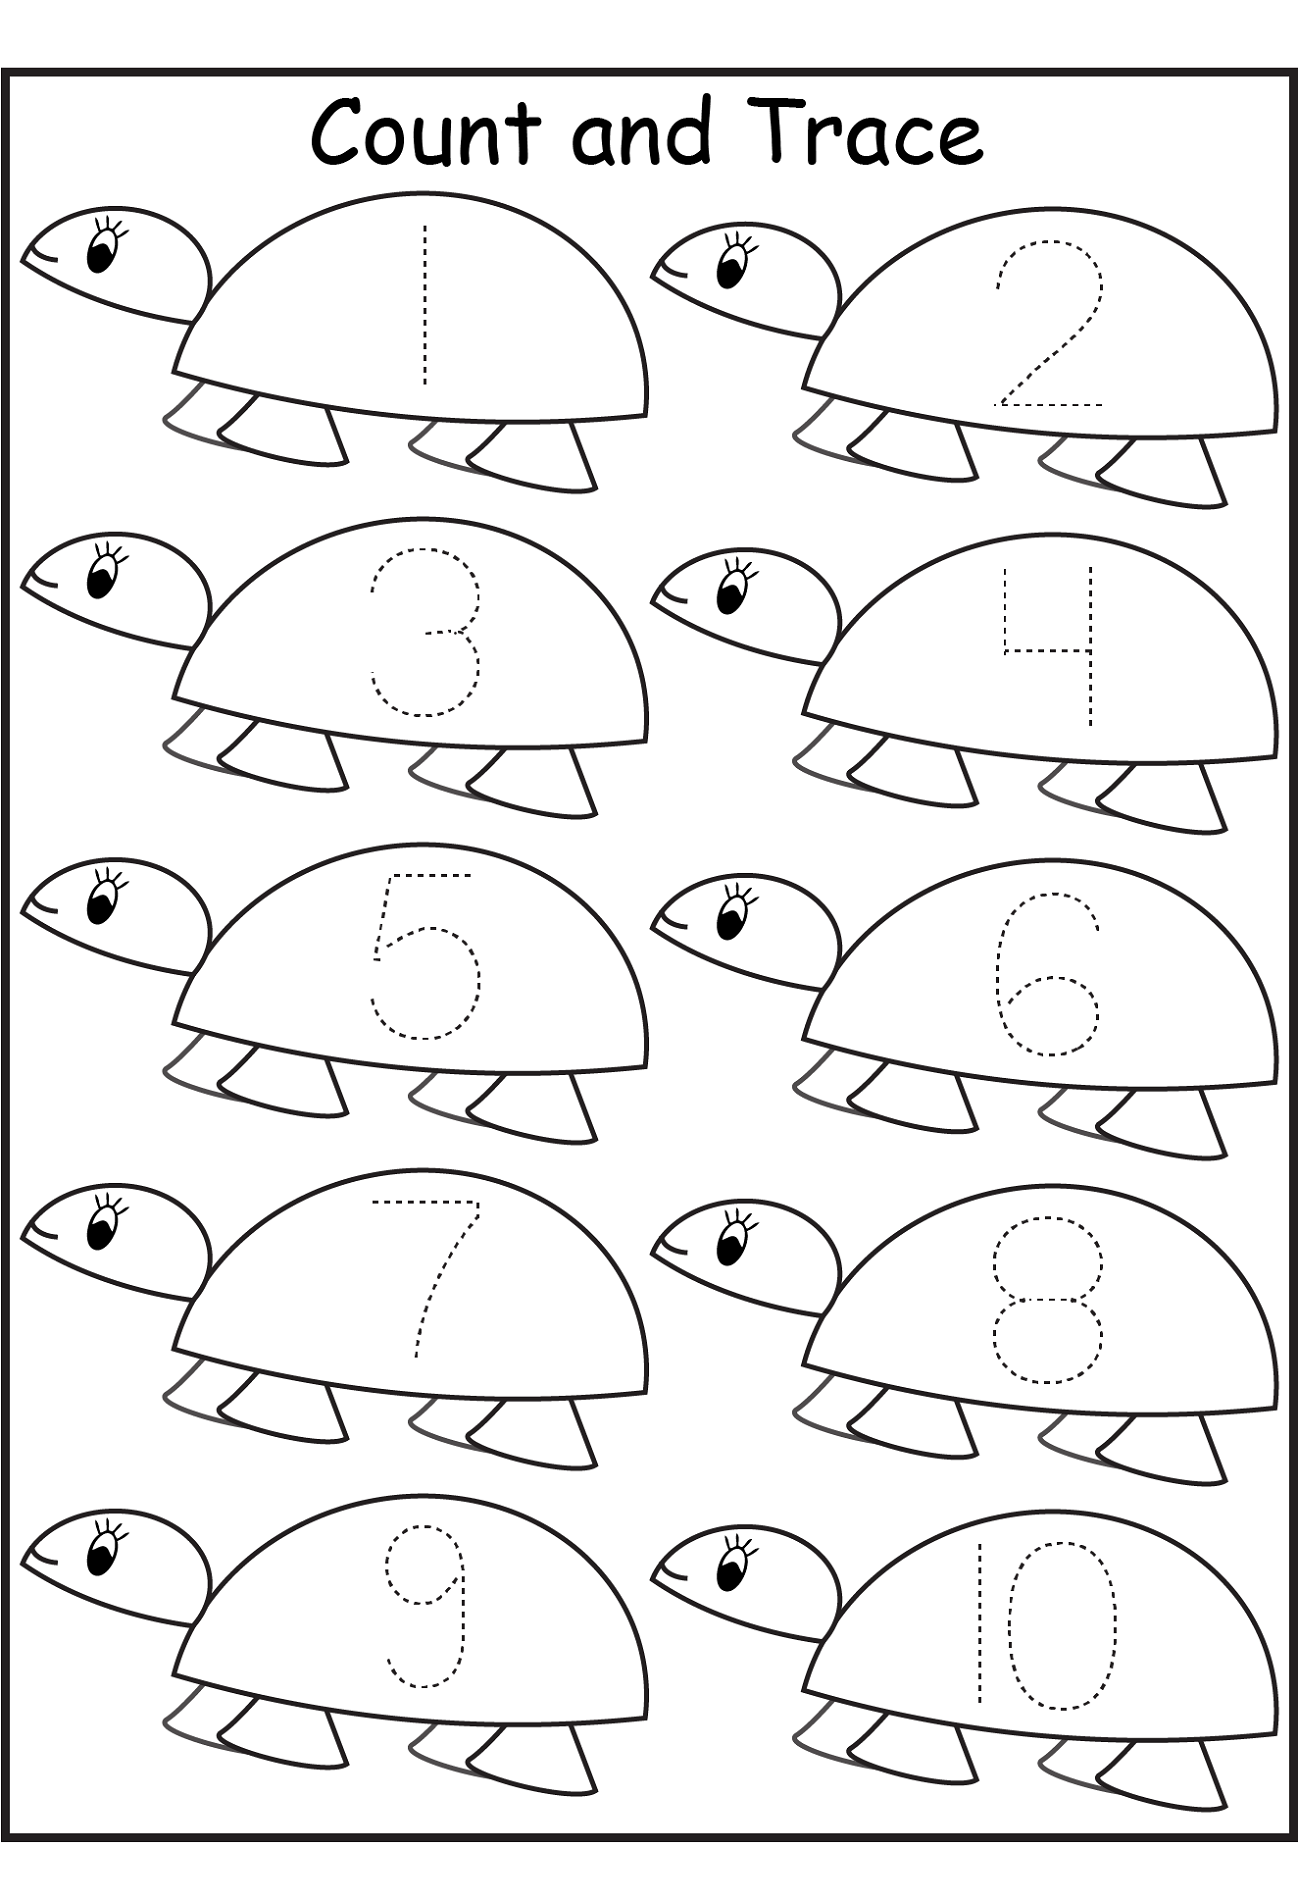 free preschool printables counting - Free Preschool Worksheet